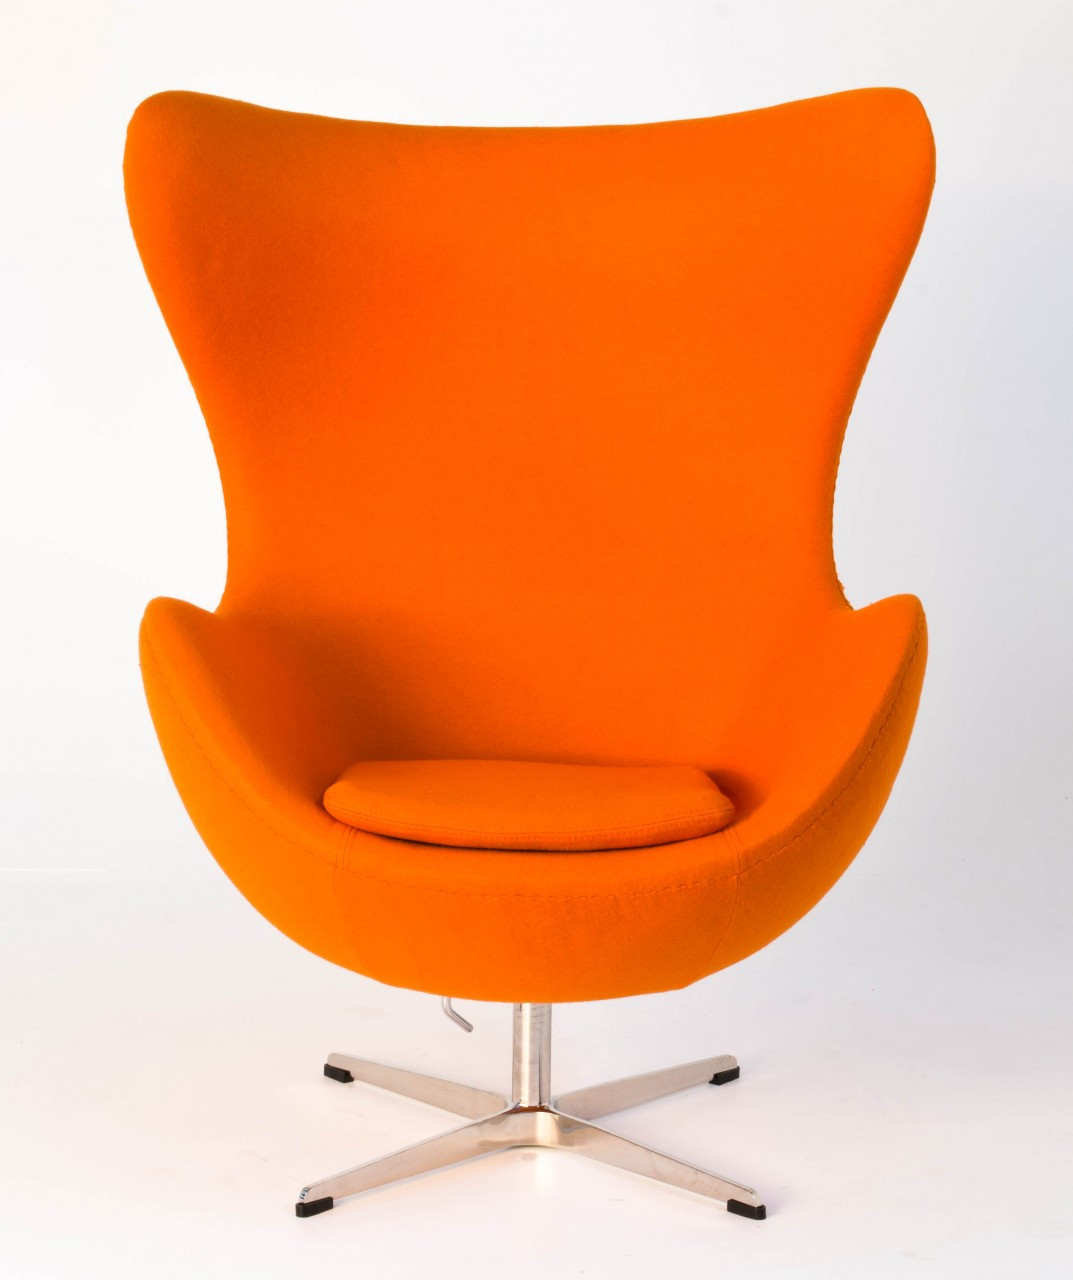 Replica Egg Chair Orange Replica Arne Jacobsen Egg Chair